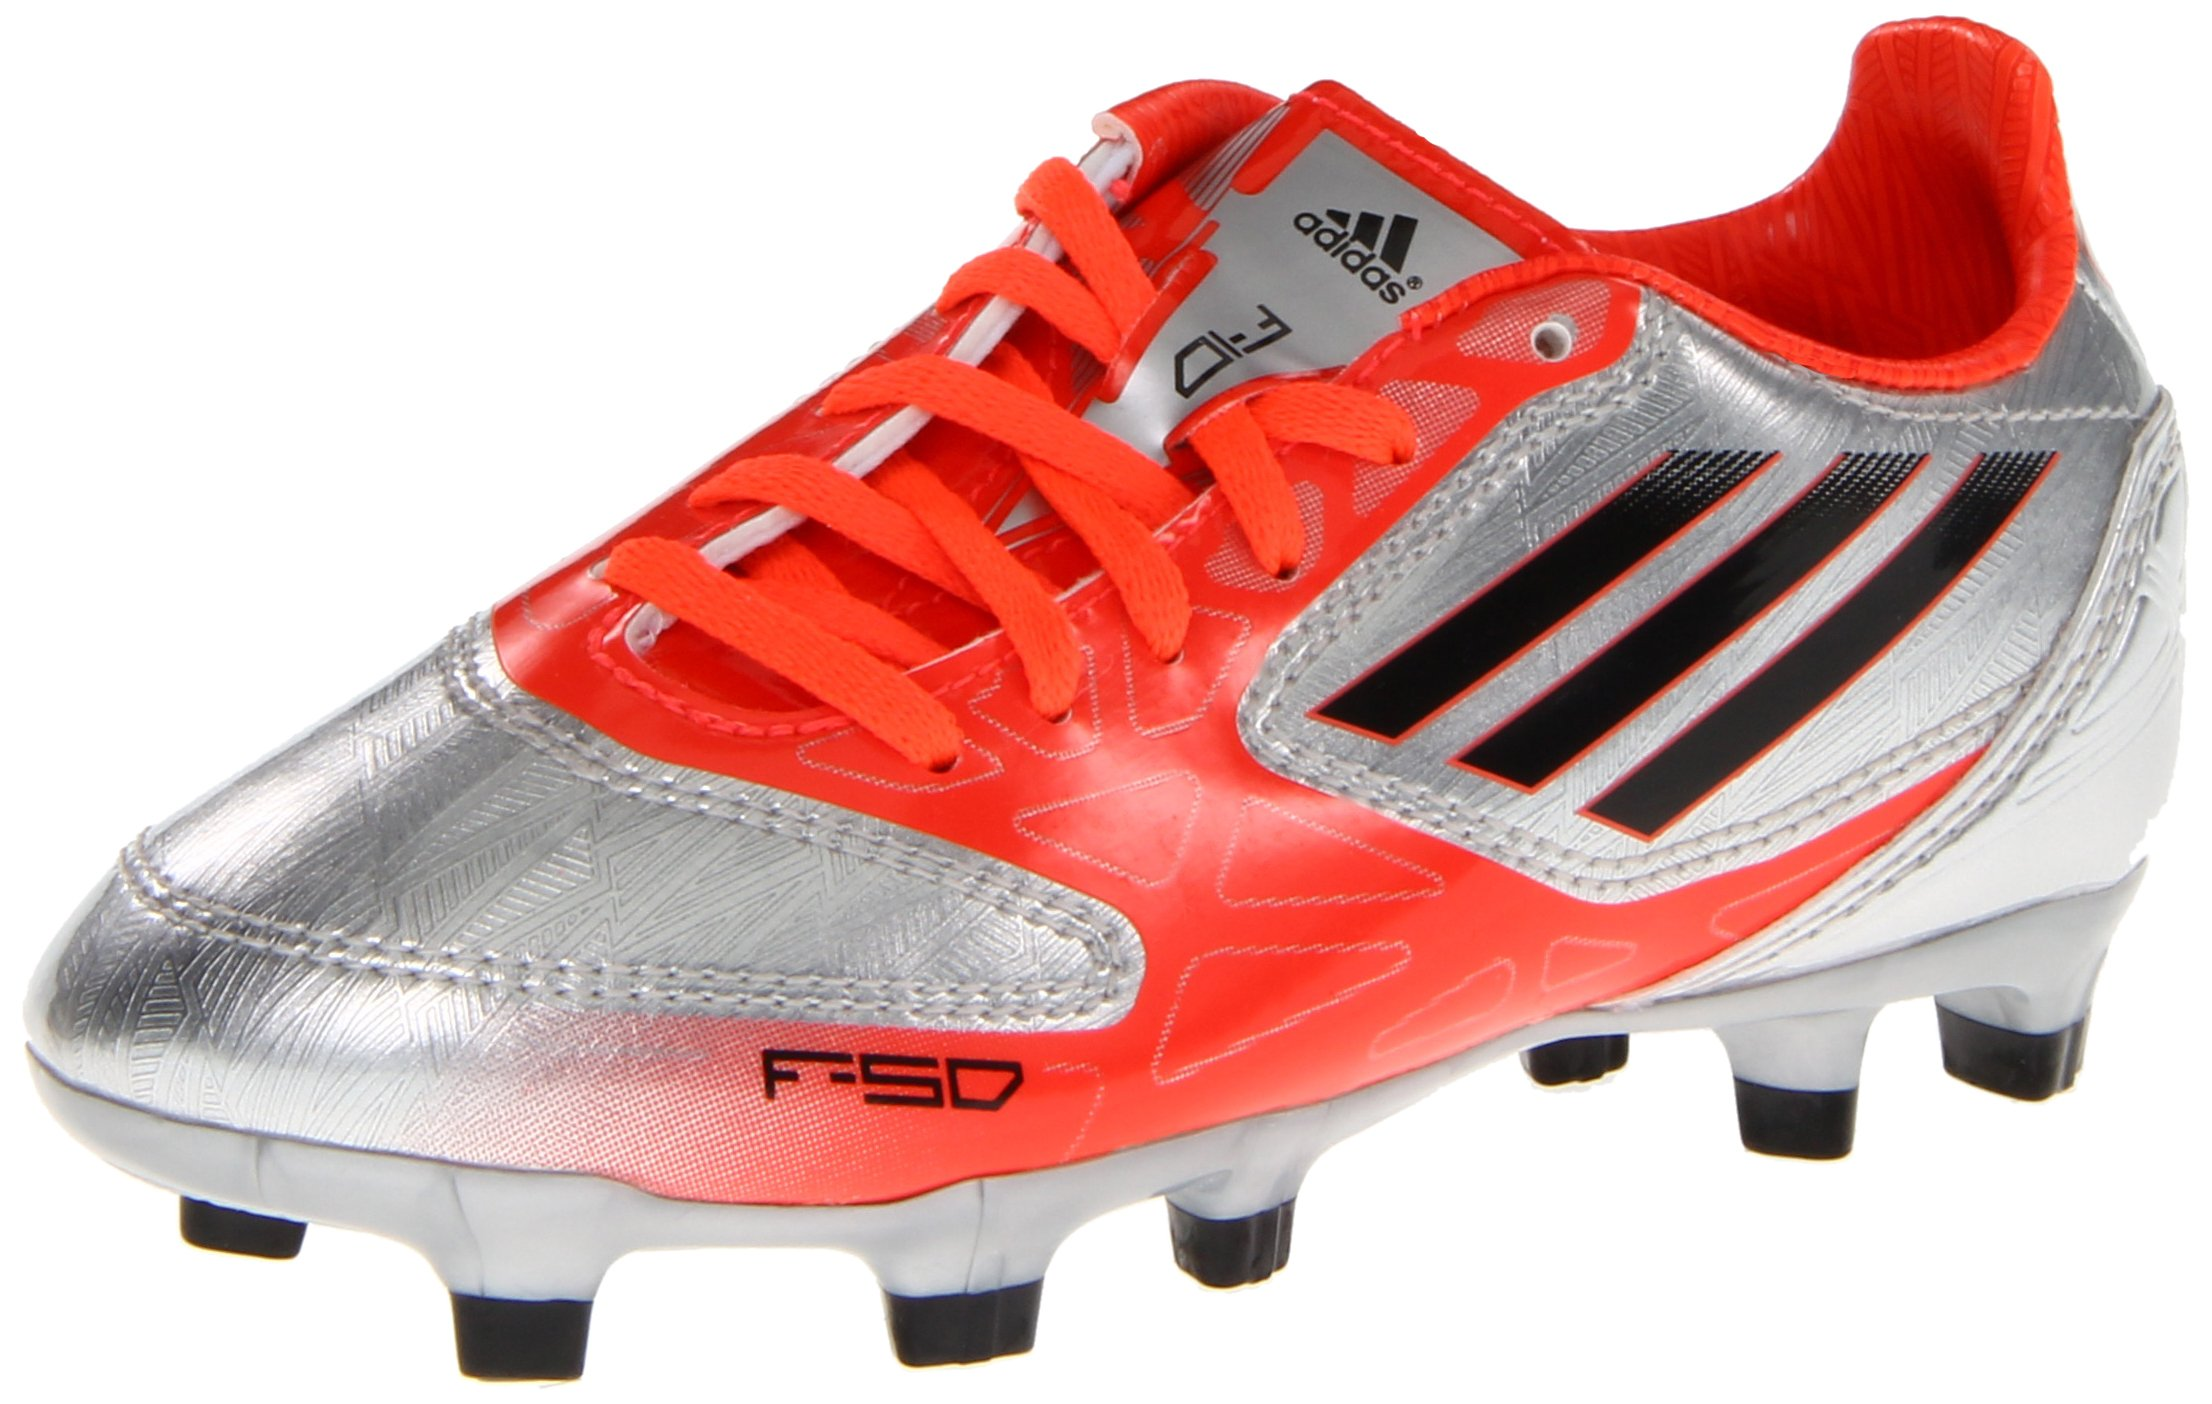 1687378814469 Galleon - Adidas F10 TRX FG Soccer Cleat,Metallic Silver/Infrared ...